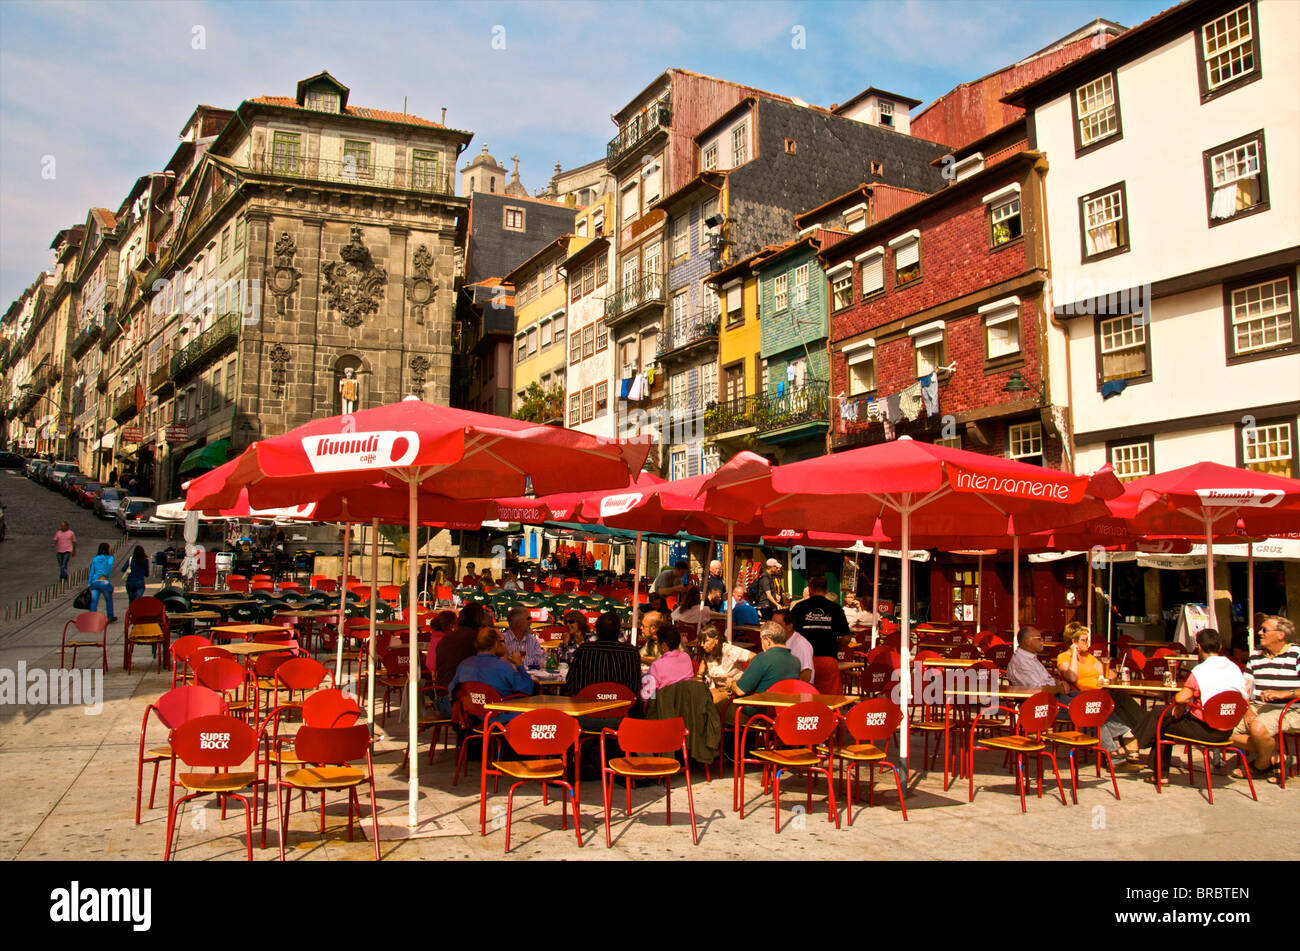 Red sunshades of cafes in Ribeira Square, Porto, Portugal - Stock Image